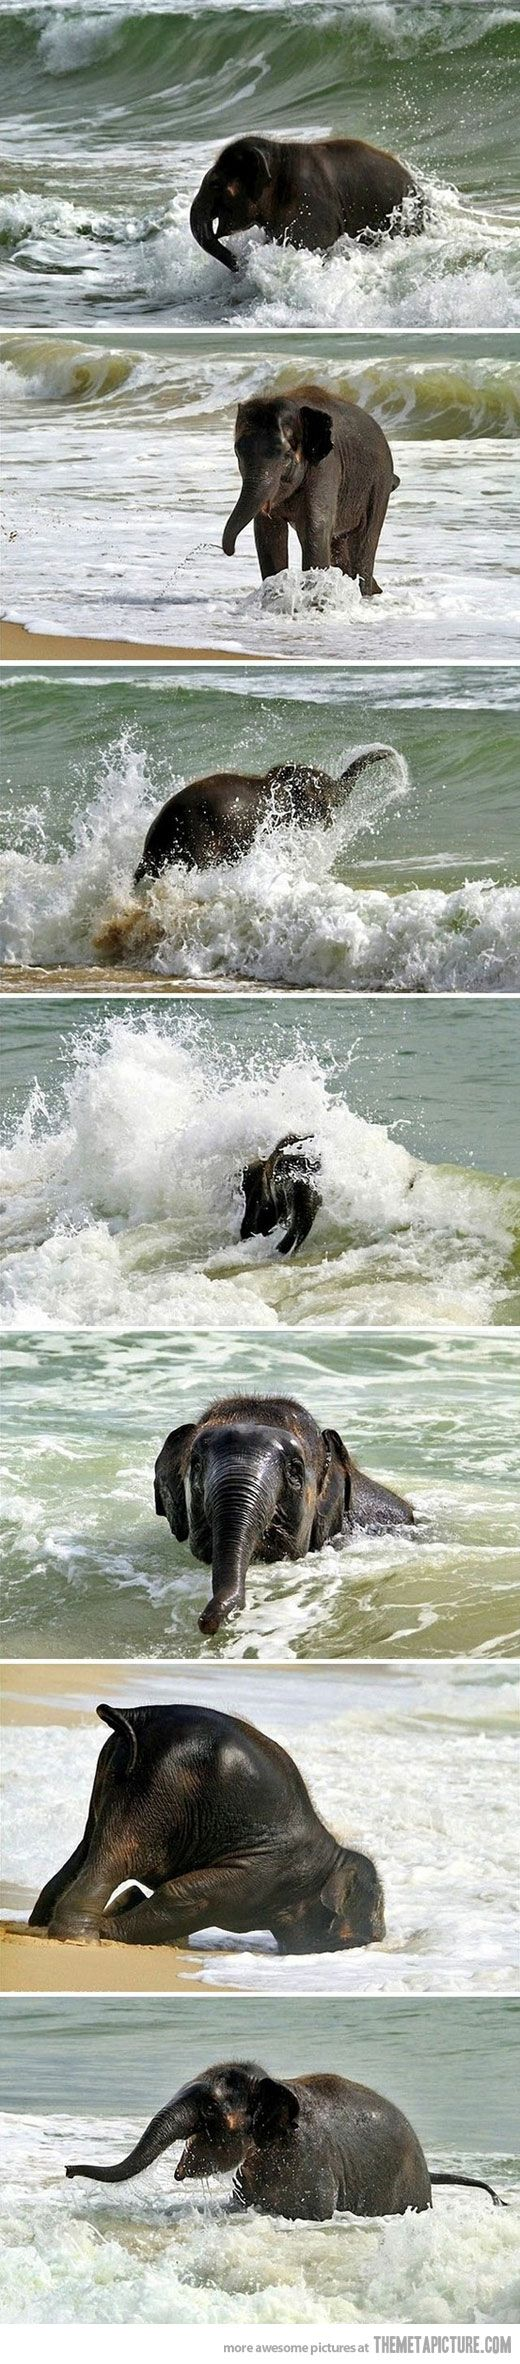 elephants make me happy. especially this little guy.Happy Baby, Baby Elephants, The Face, The Ocean, At The Beach, Happy Happy Happy, Happy Elephant, Animal, The Sea